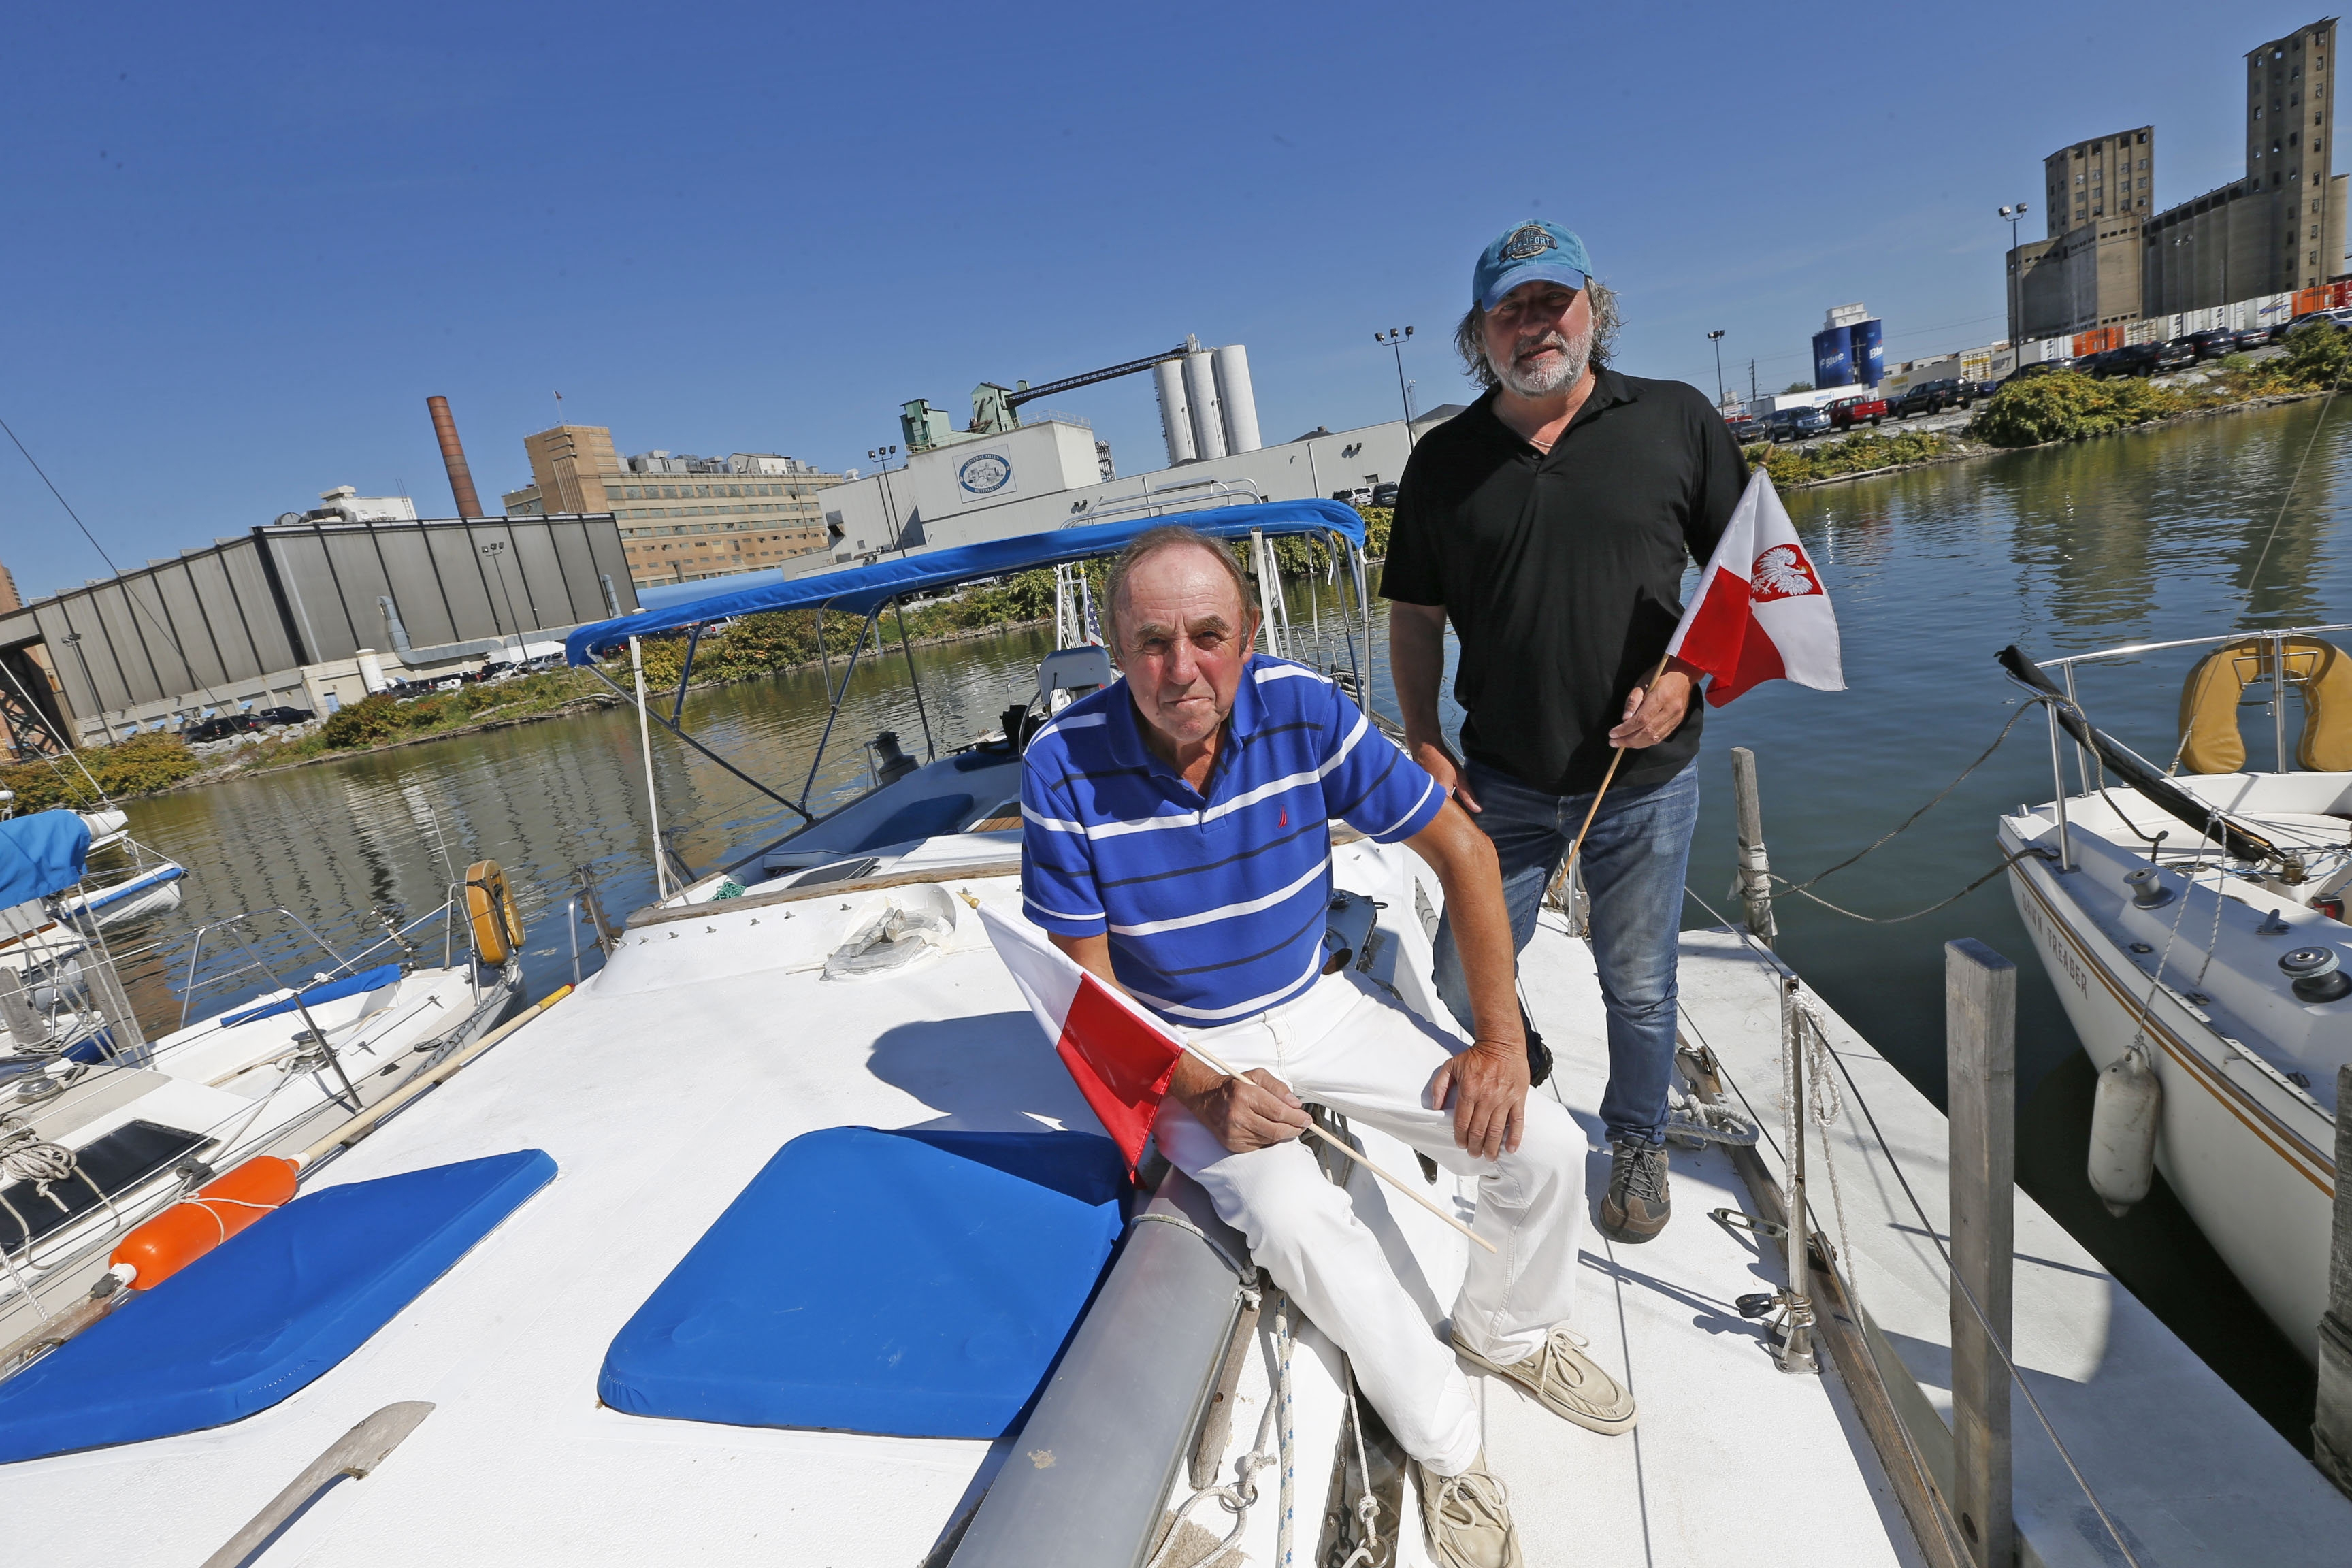 Capt. Andrew W. Piotrowski, left, with documentarian Peter Rudzinski, hold Polish flags near their boat at RCR Yacht's marina in Buffalo on Wednesday, Oct. 5, 2016. (Robert Kirkham/Buffalo News)